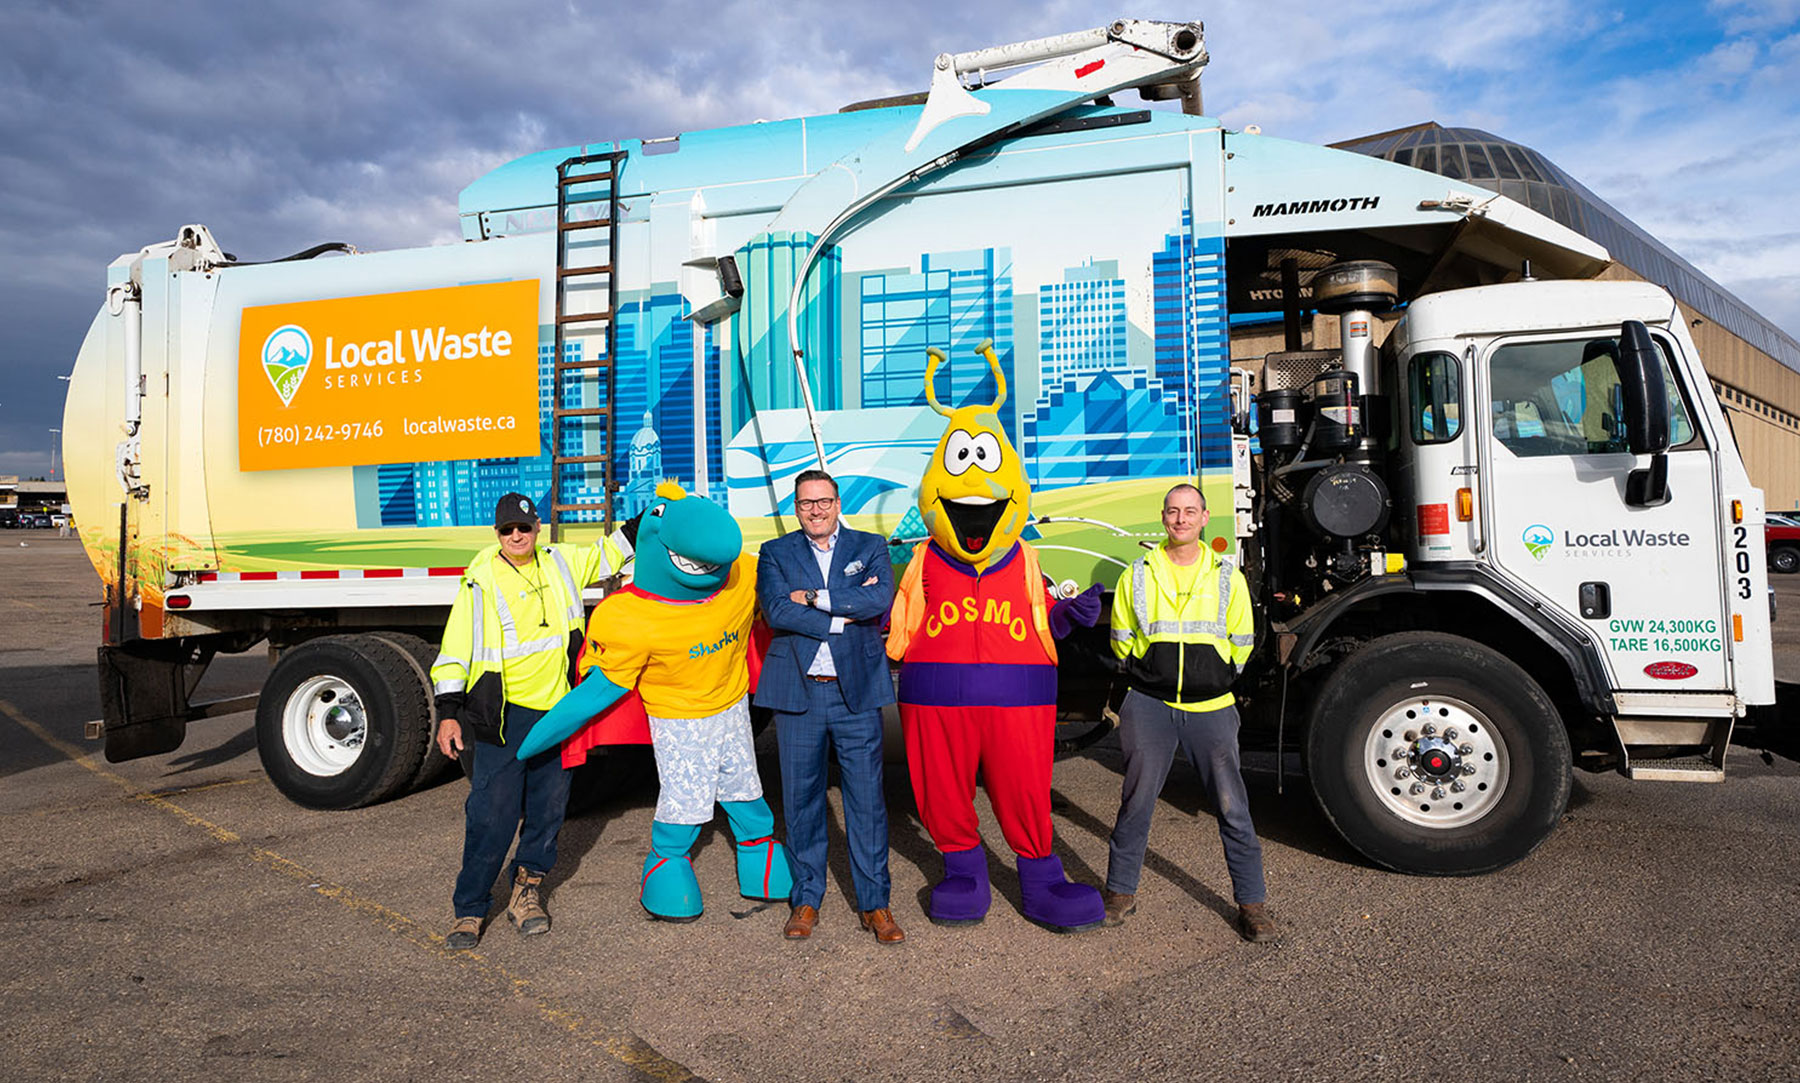 West Edmonton Mall and Local Waste Partner for Waste Collection & Recycling Services and 'Mayor of the Month' Charitable Initiative